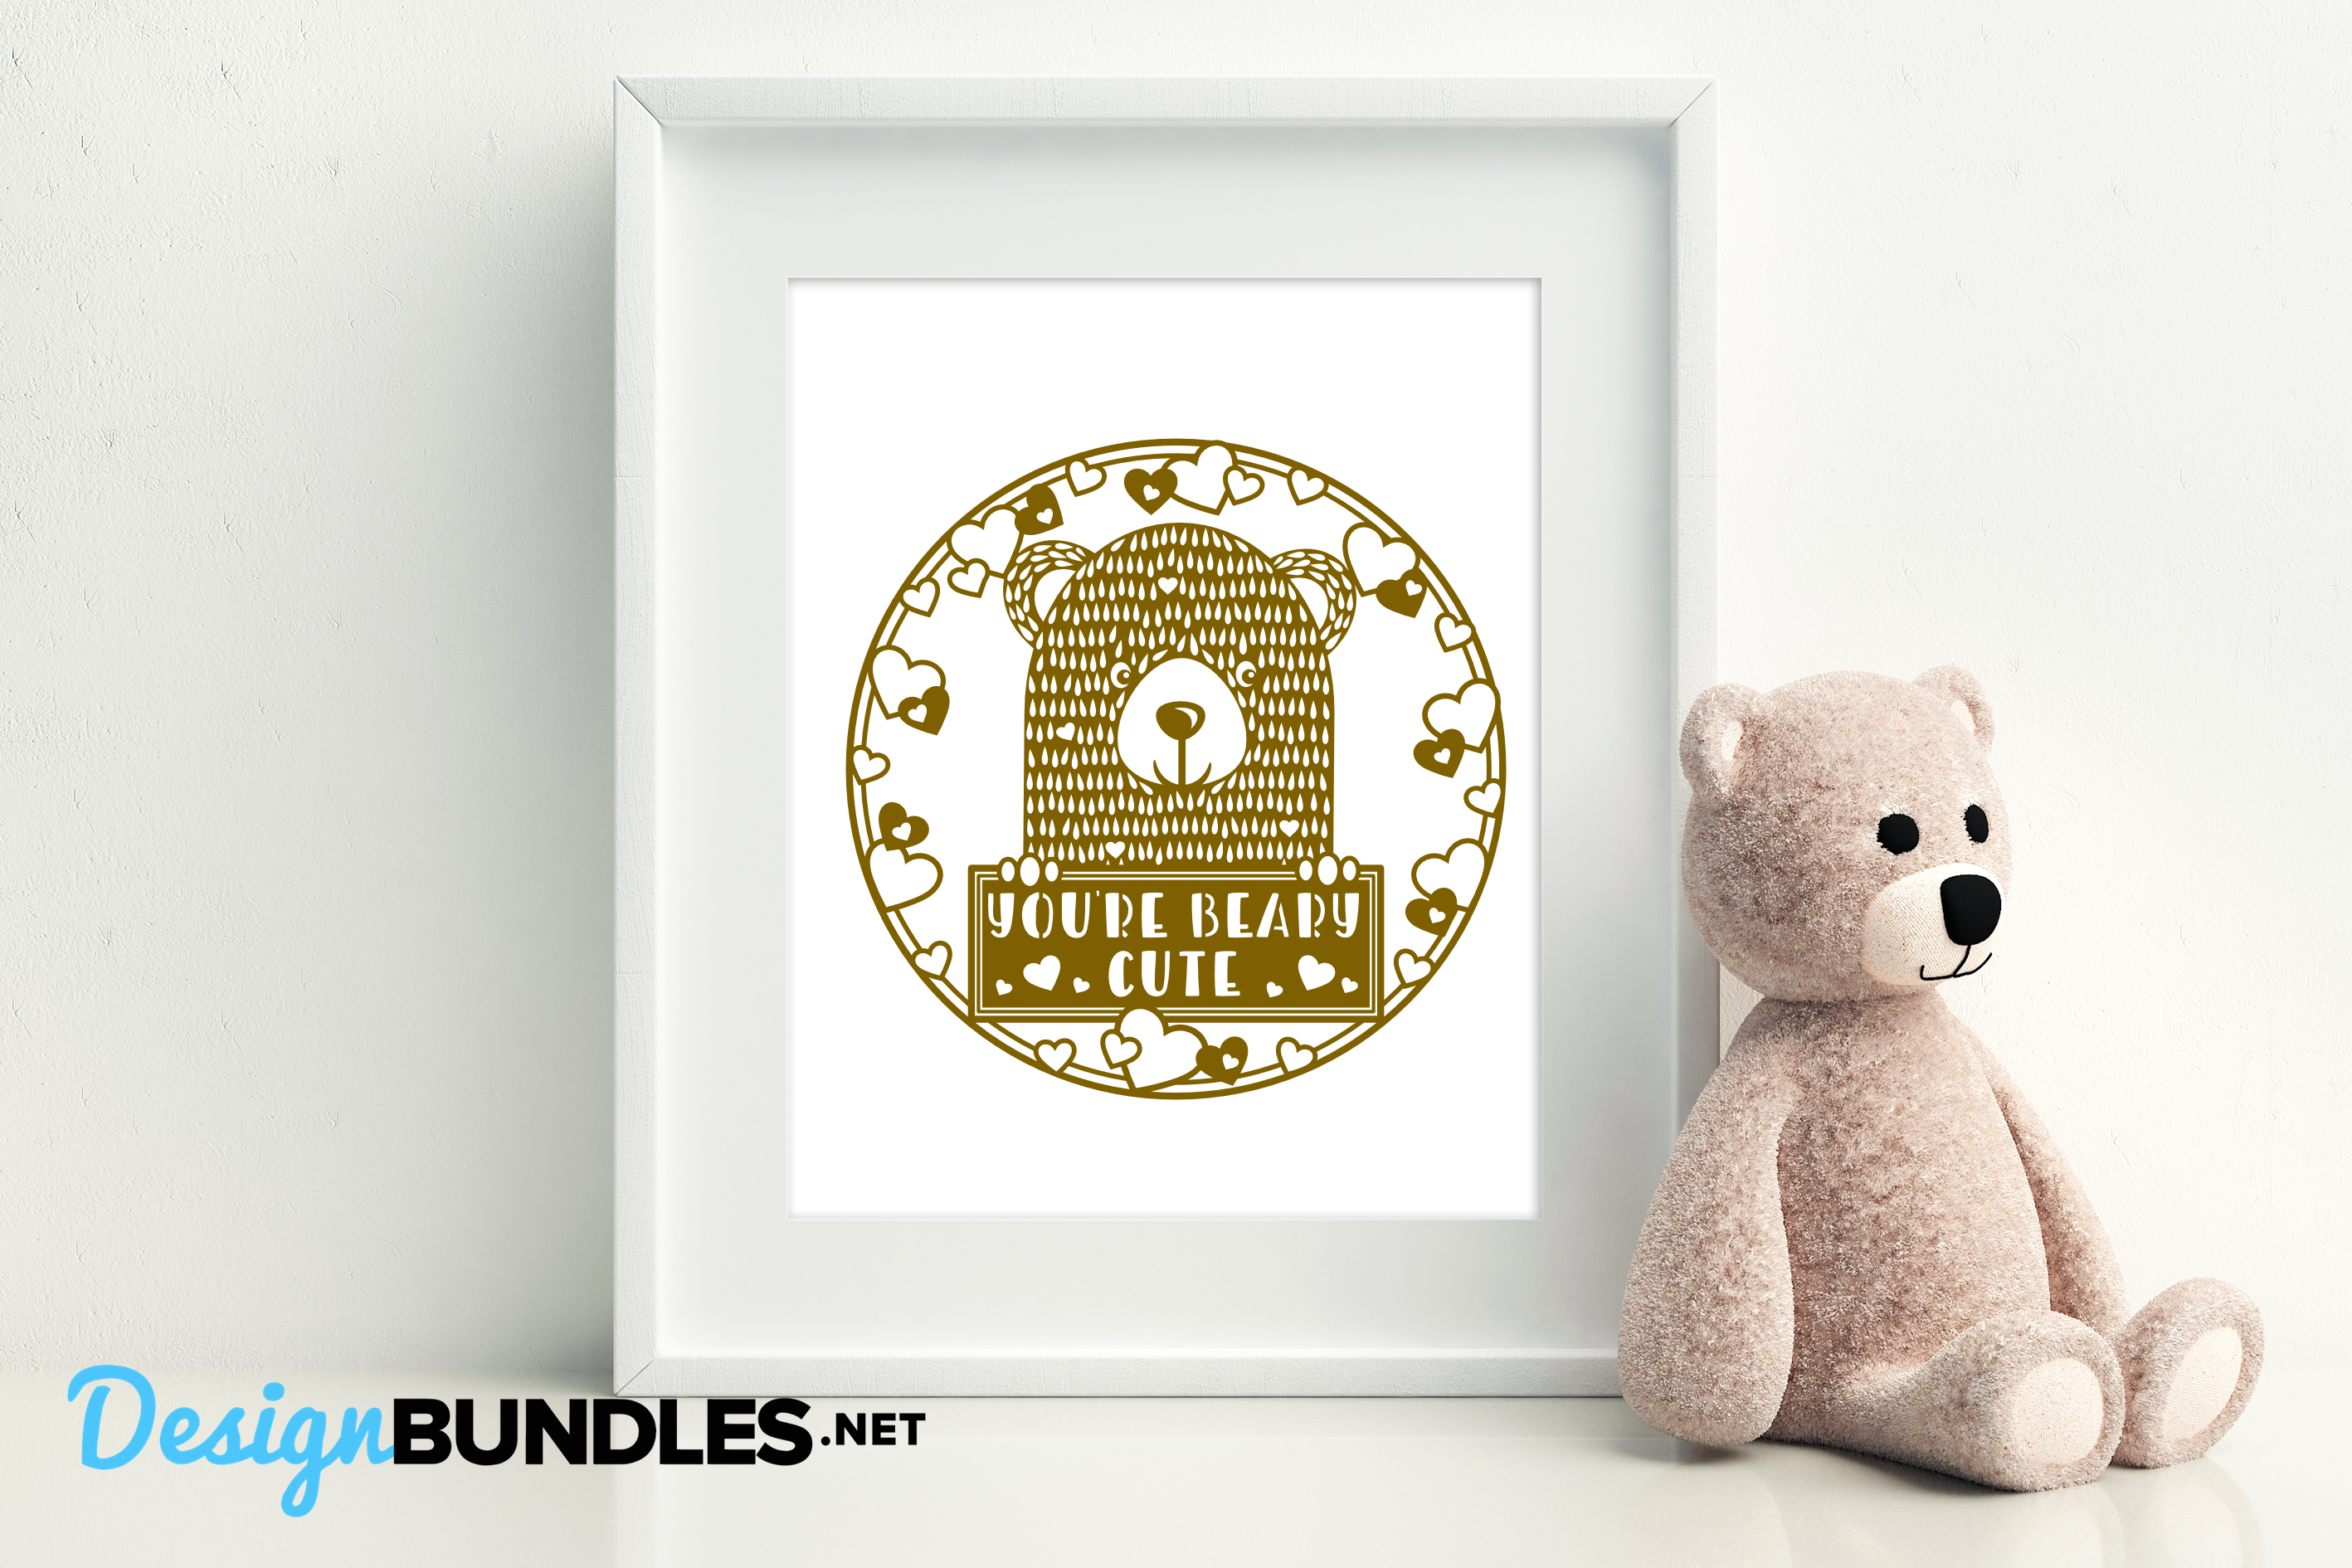 You're beary cute paper cut design example image 3